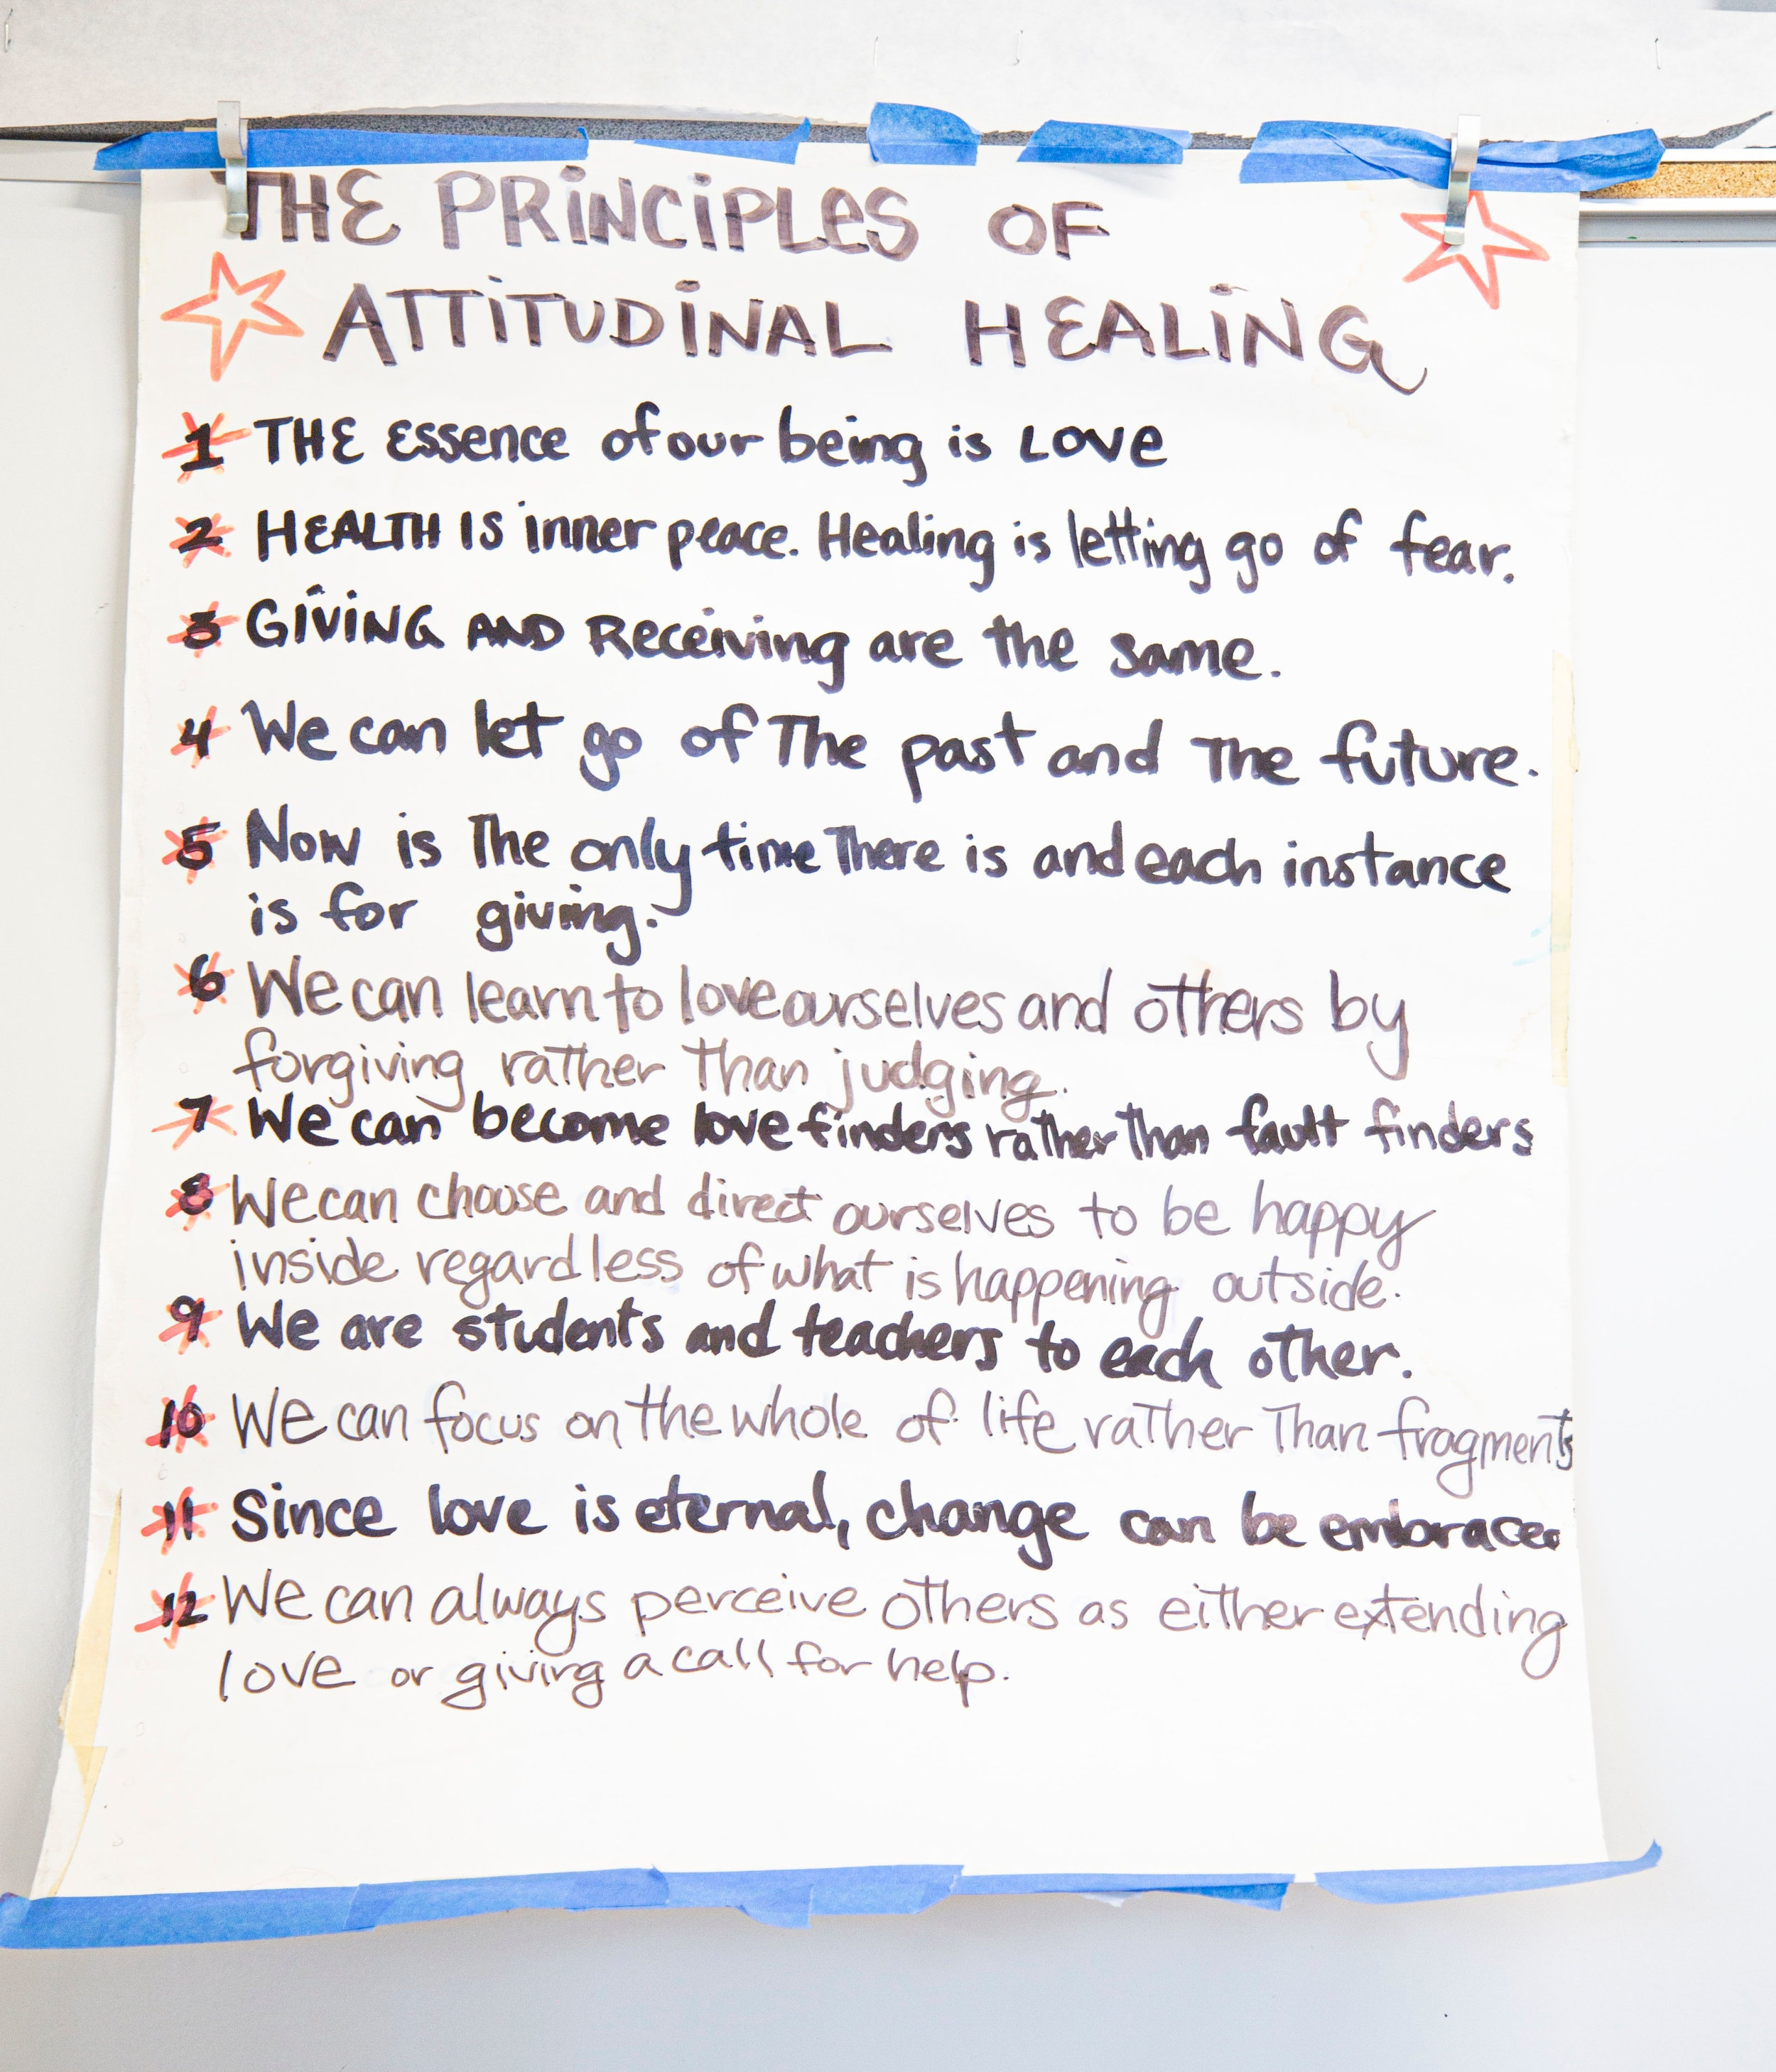 Students learn the 12 Principles of Attitudinal Healing. (click to enlarge)